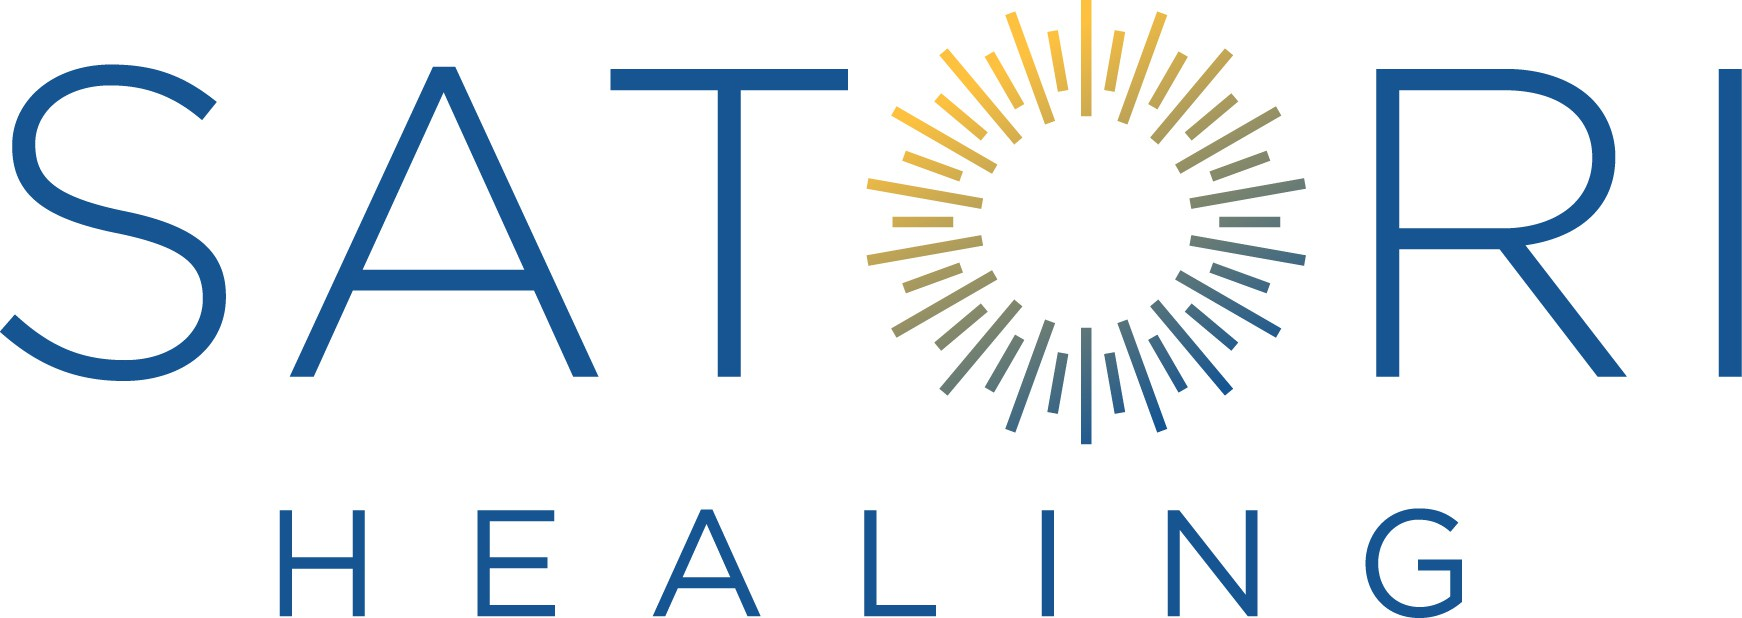 This logo can be a key to healing and peace.  I envision a logo that is eye catching, creates curiosity yet invokes peac